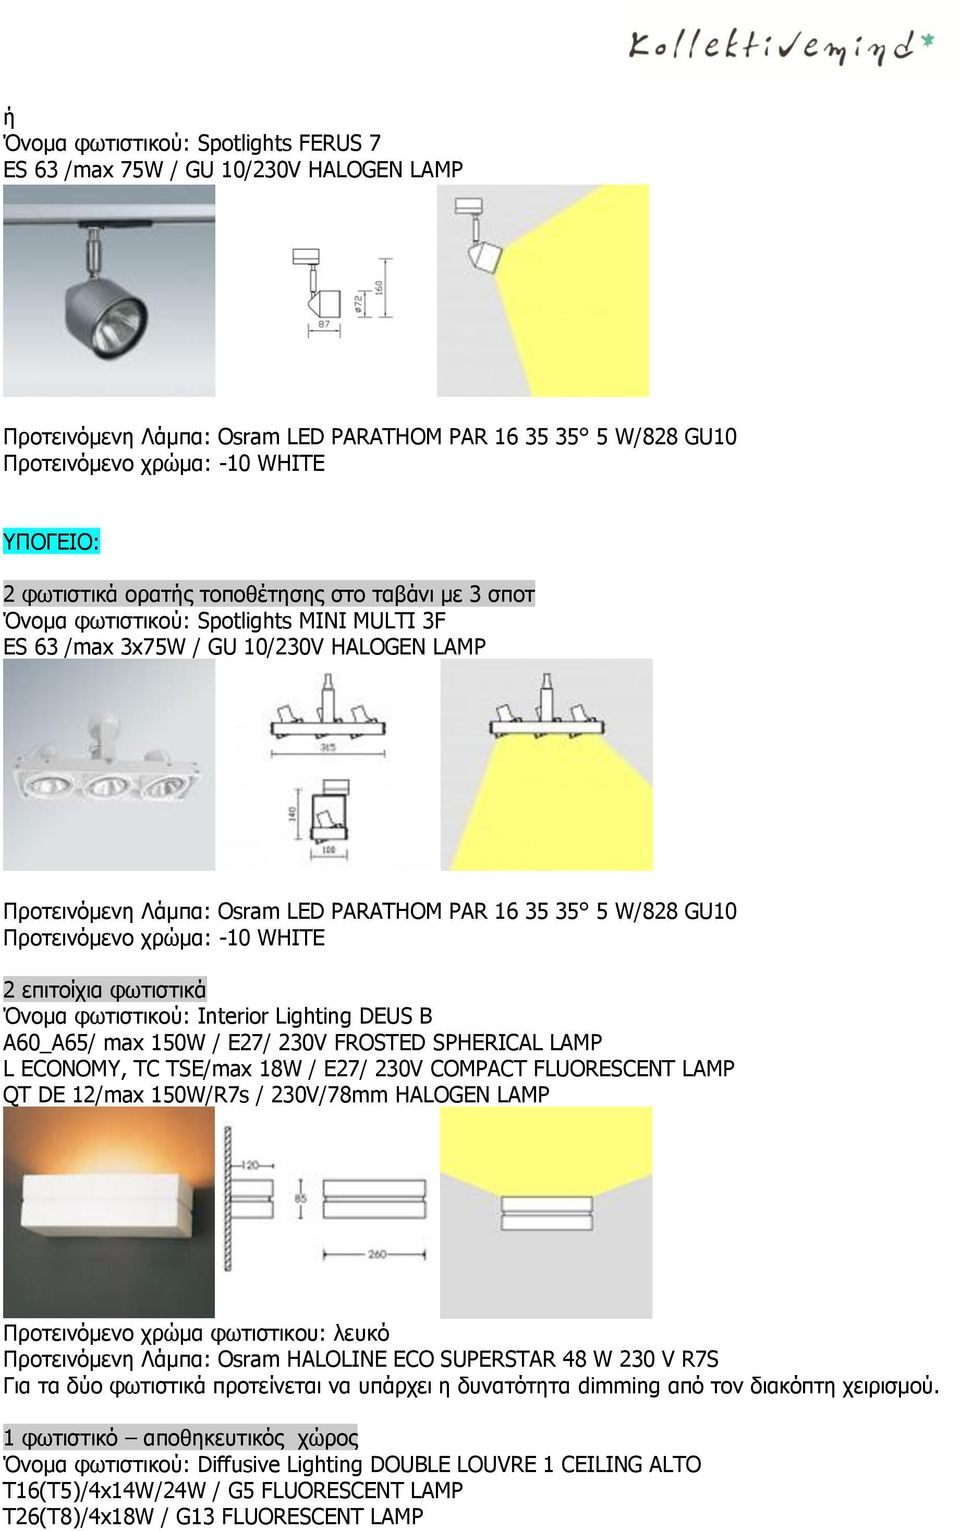 Interior Lighting DEUS B A60_A65/ max 150W / E27/ 230V FROSTED SPHERICAL LAMP L ECONOMY, TC TSE/max 18W / E27/ 230V COMPACT FLUORESCENT LAMP QT DE 12/max 150W/R7s / 230V/78mm HALOGEN LAMP